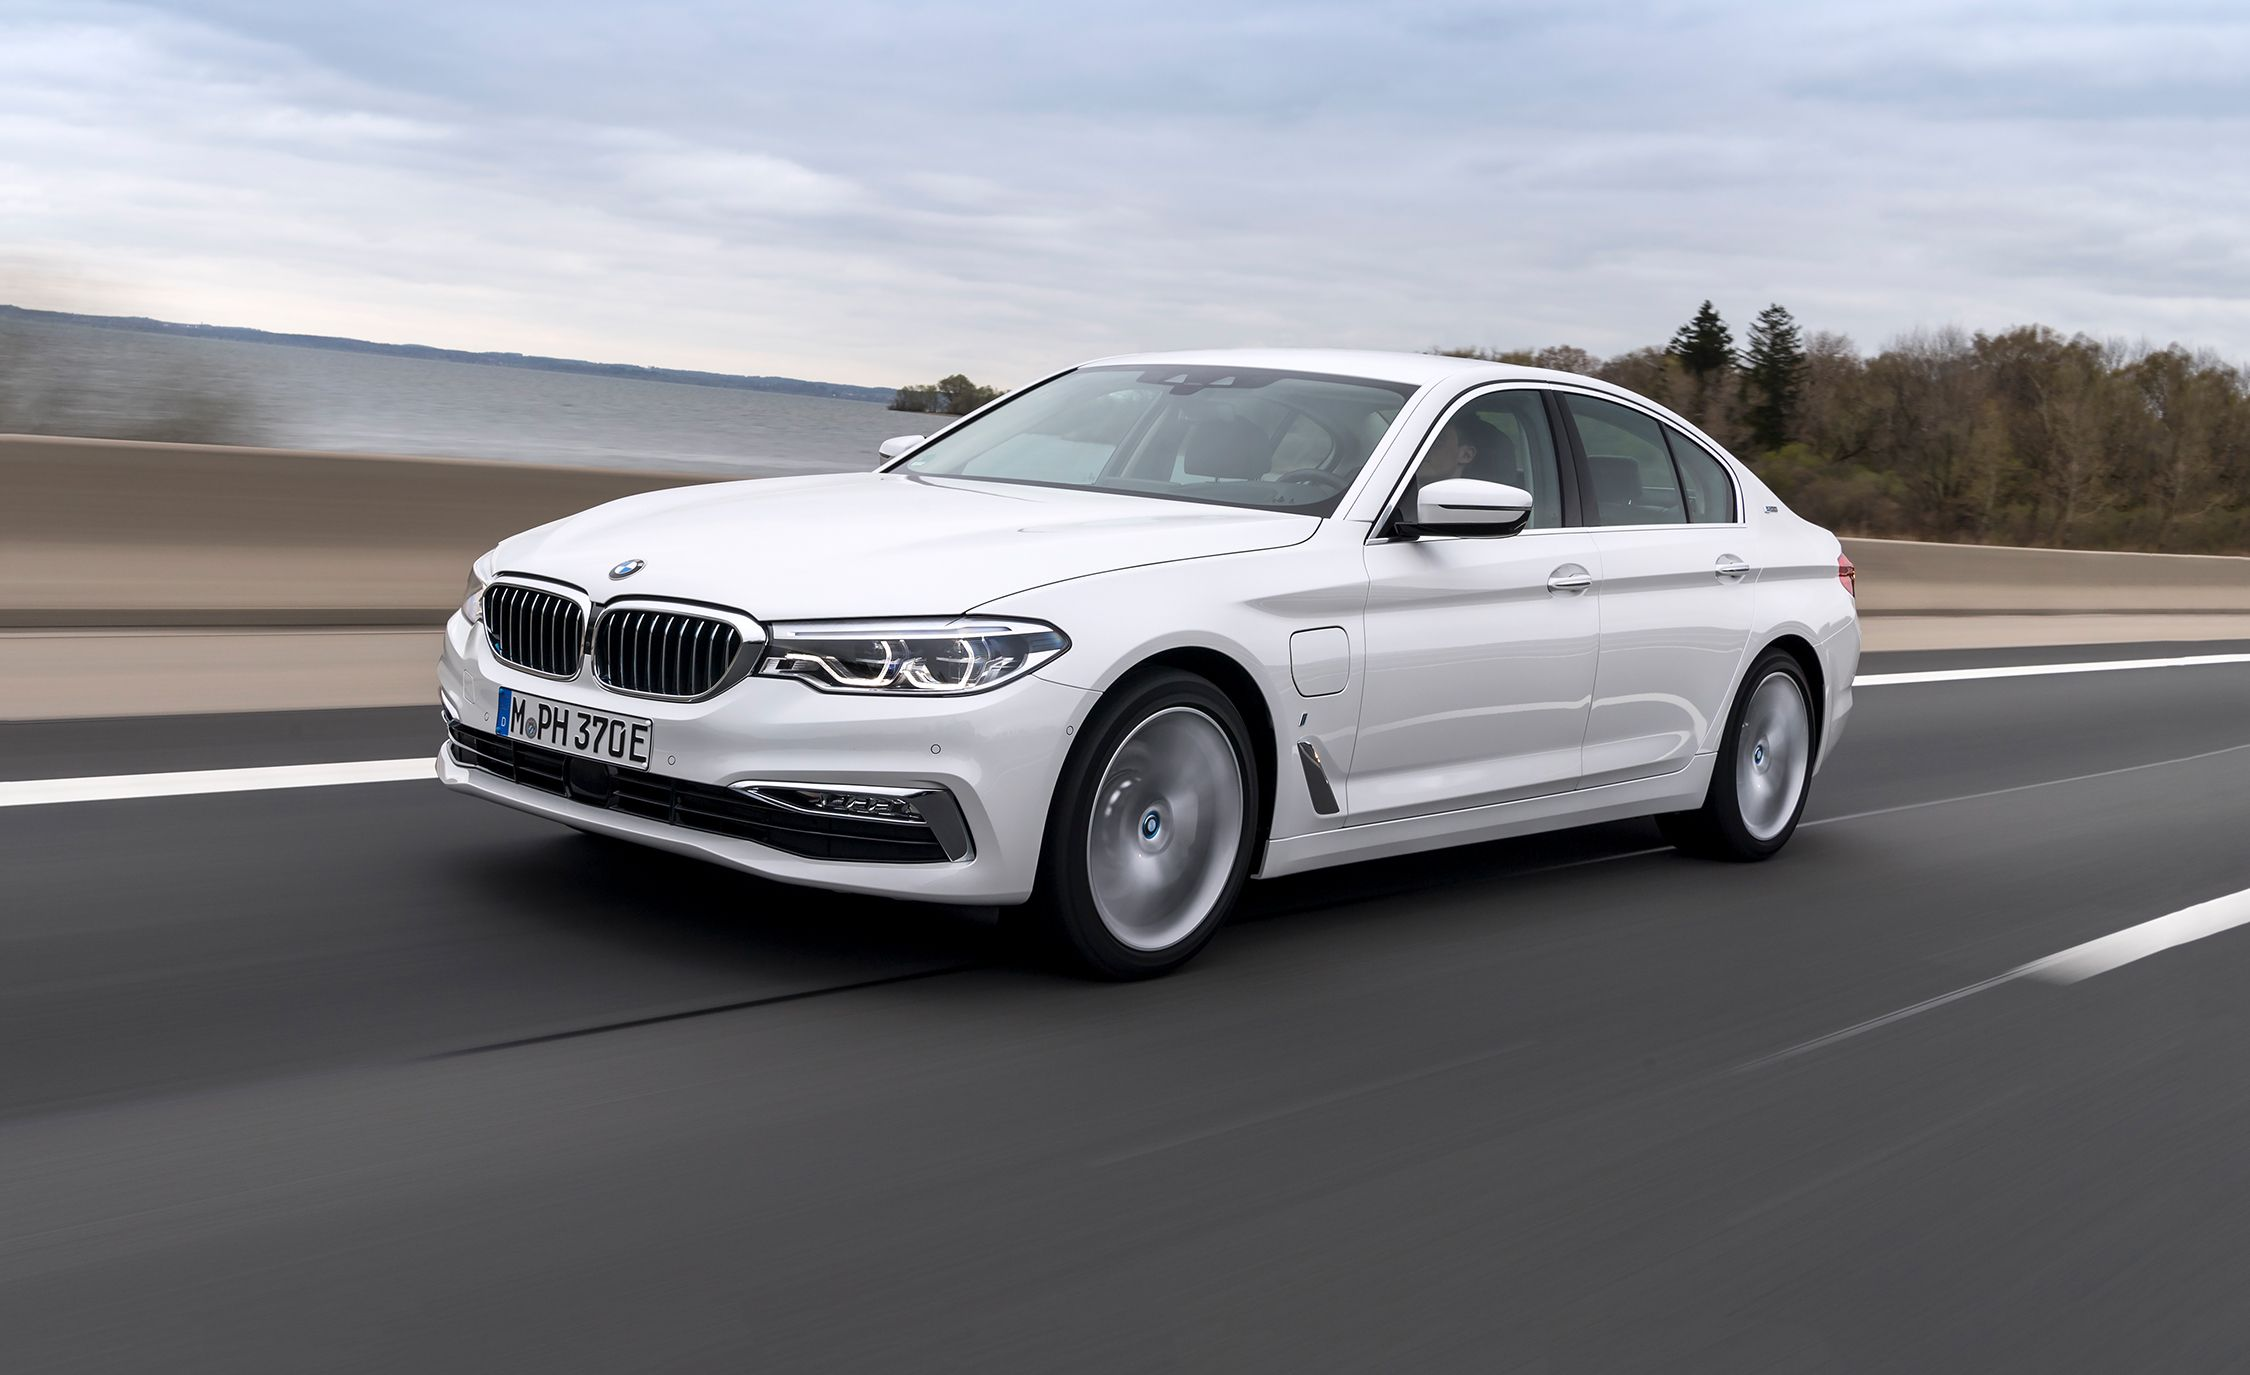 2018 Bmw 530e Plug In Hybrid First Drive Review Car And Driver